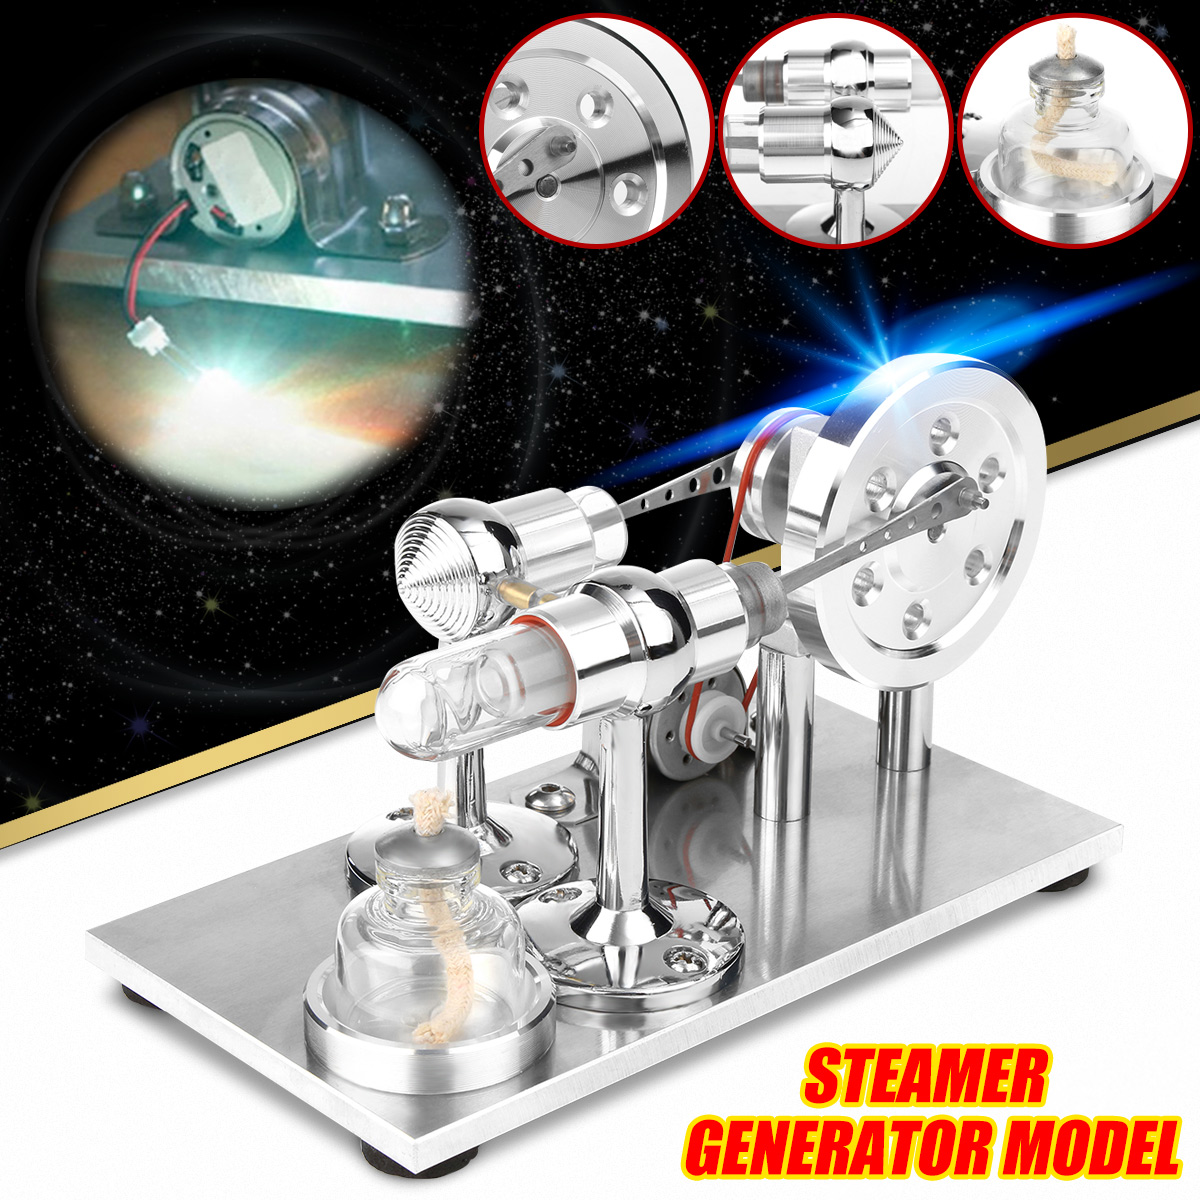 Hot Air Stirling Engine Motor Model Educational Toy Electricity Generator Physics Experiment Kit